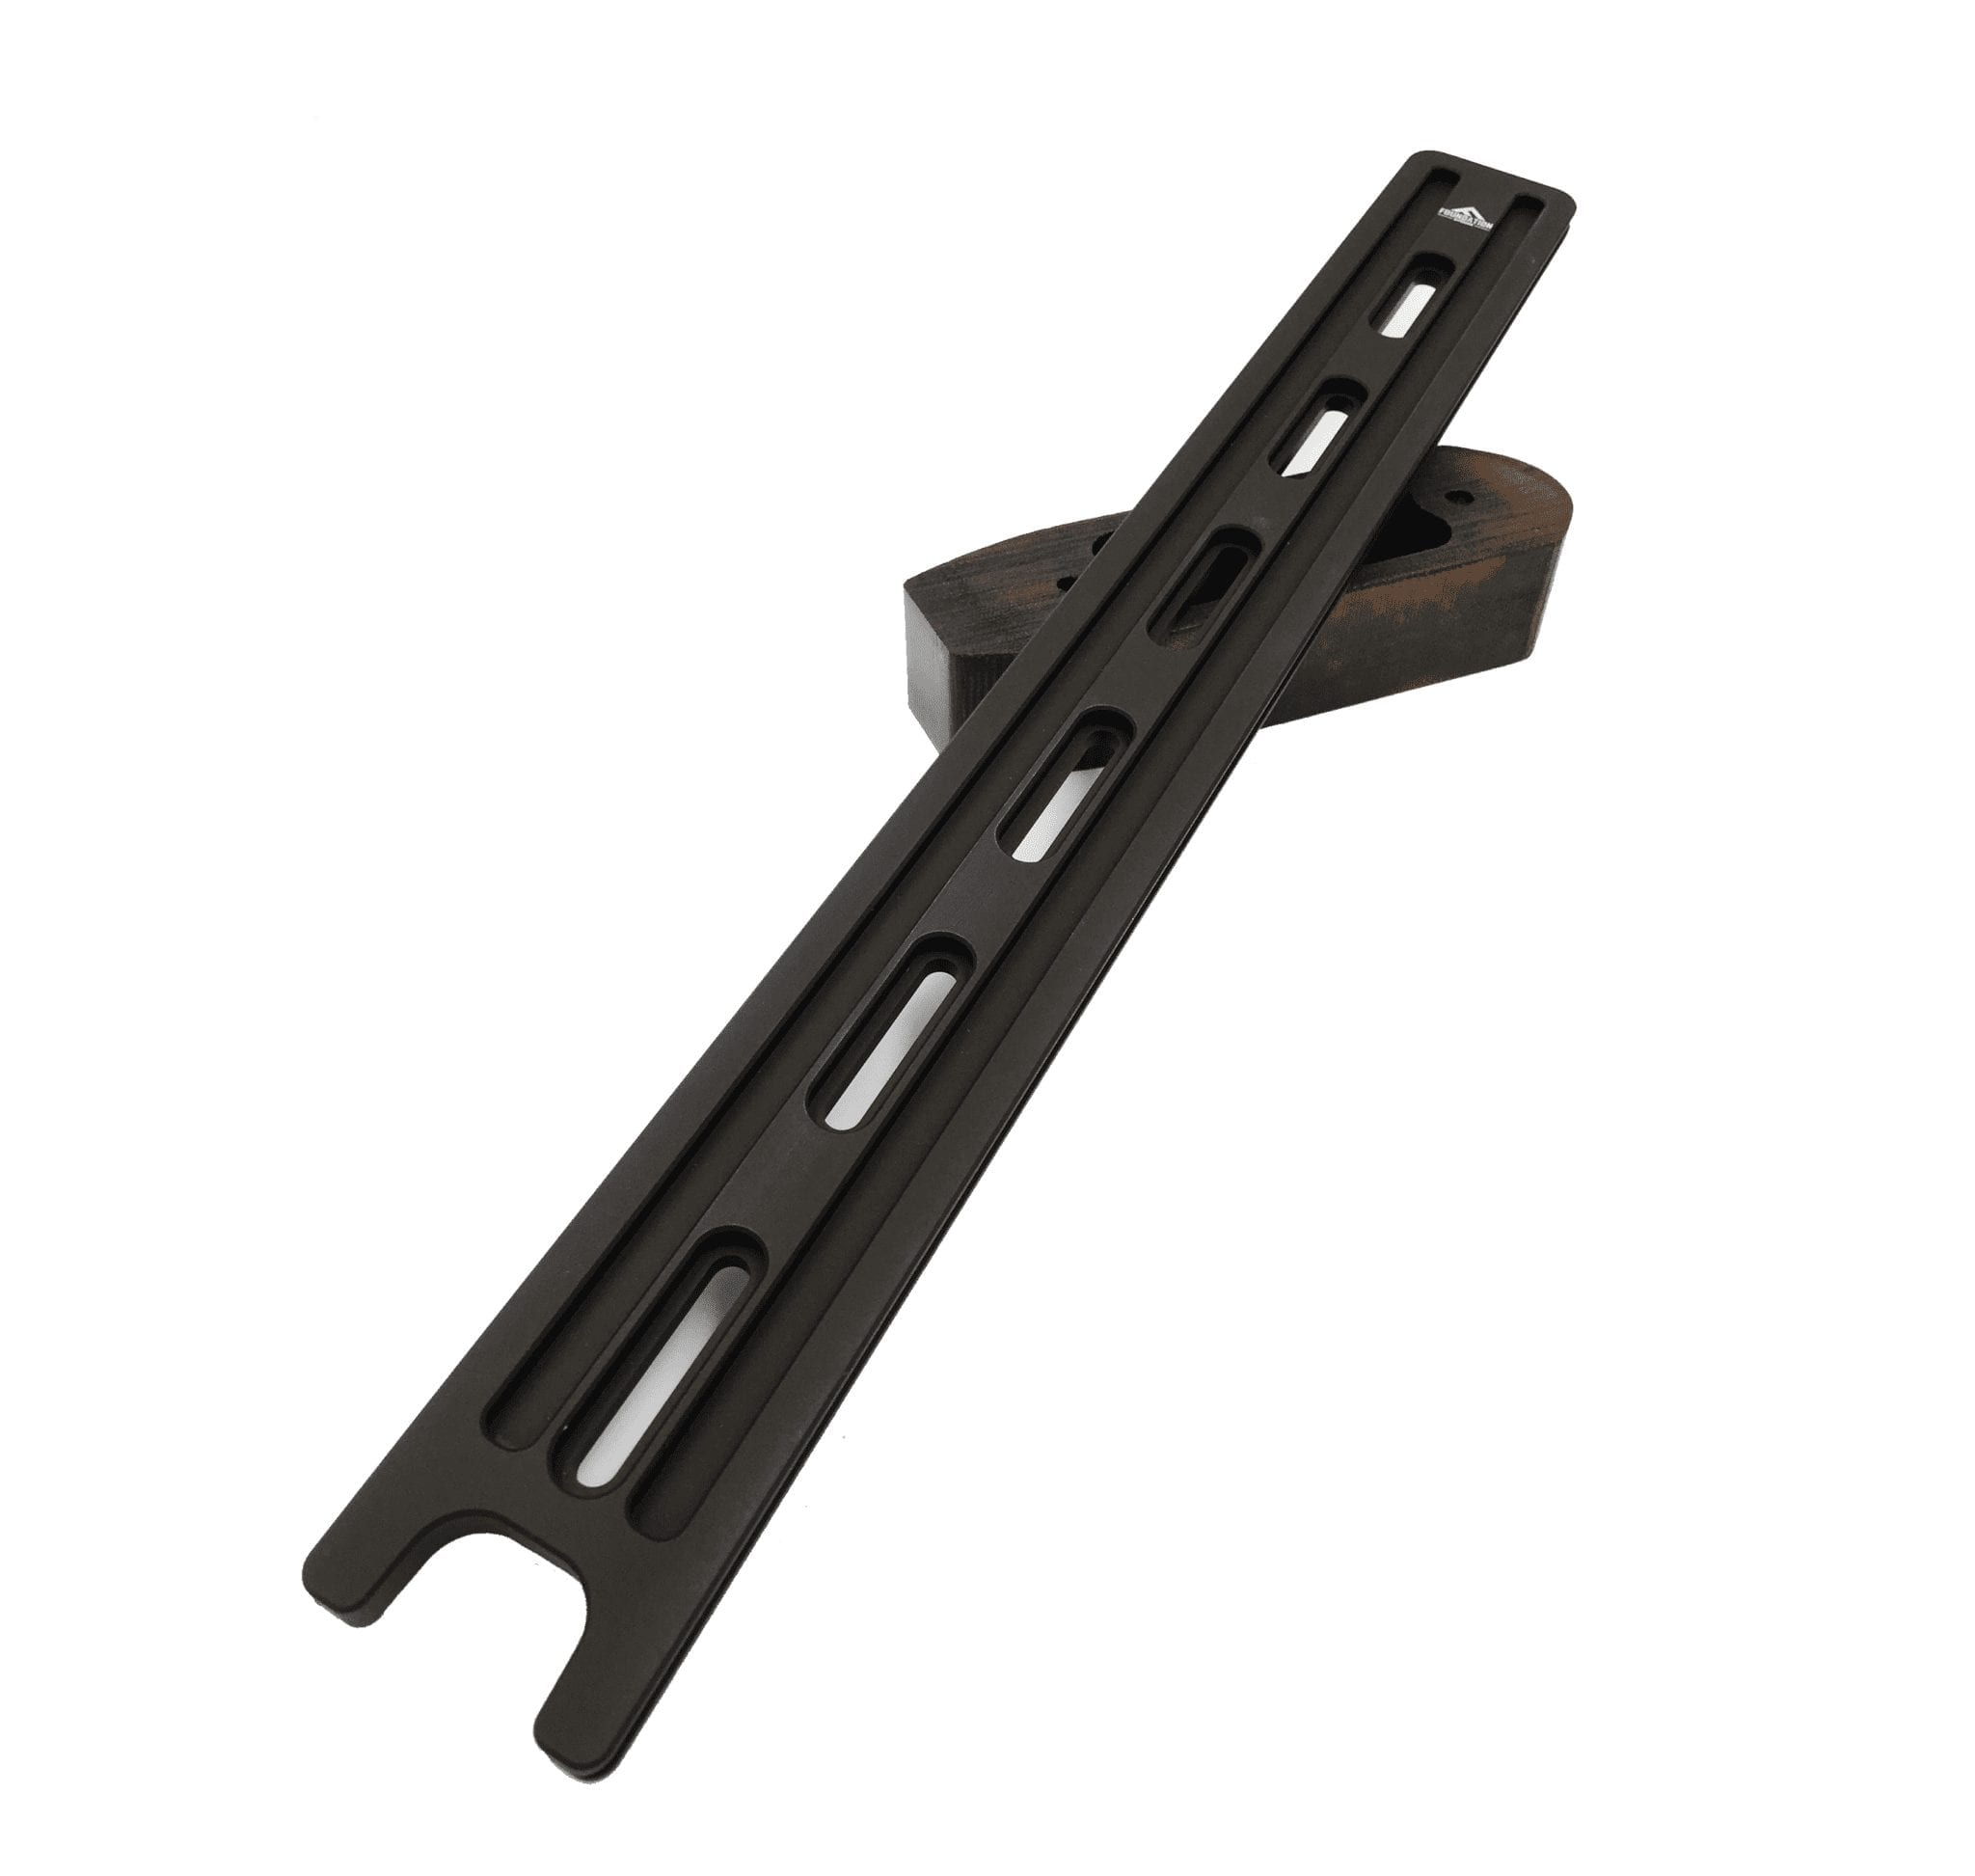 Full Length 1.5″ Dovetail / RRS Compatible Rail